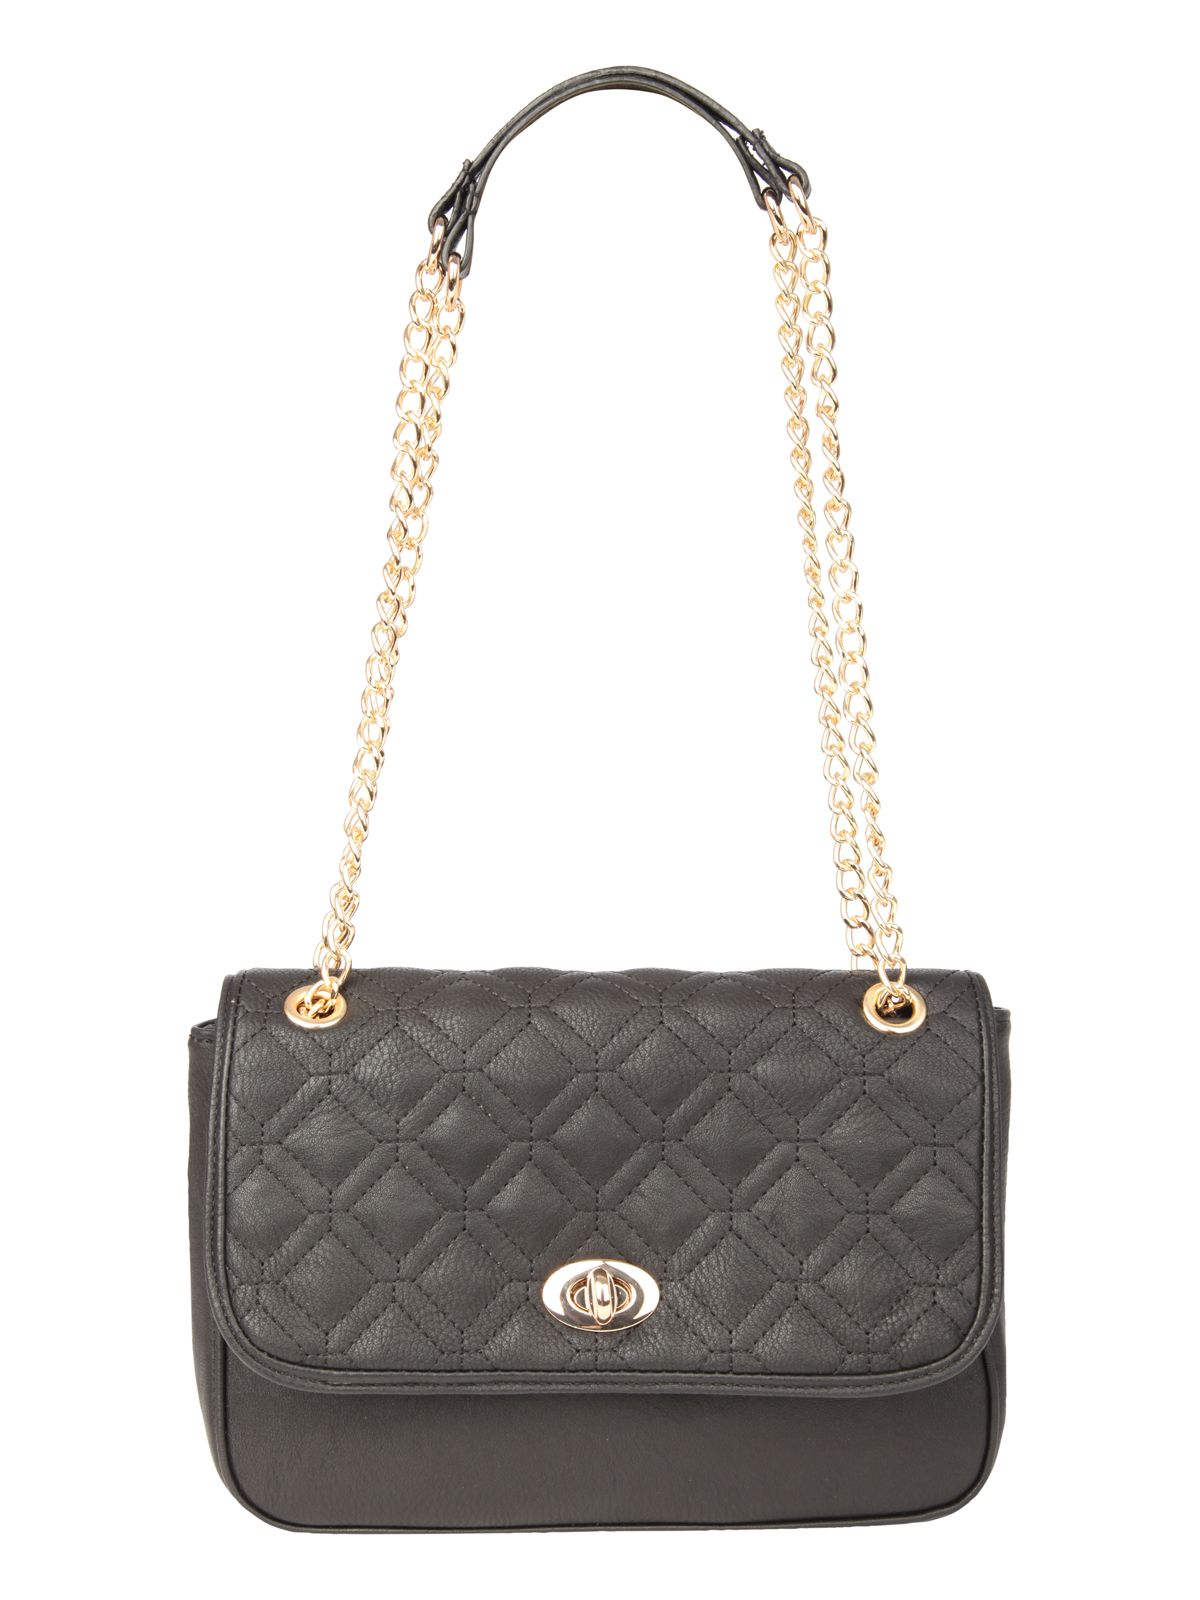 Quilted turnlock handbag